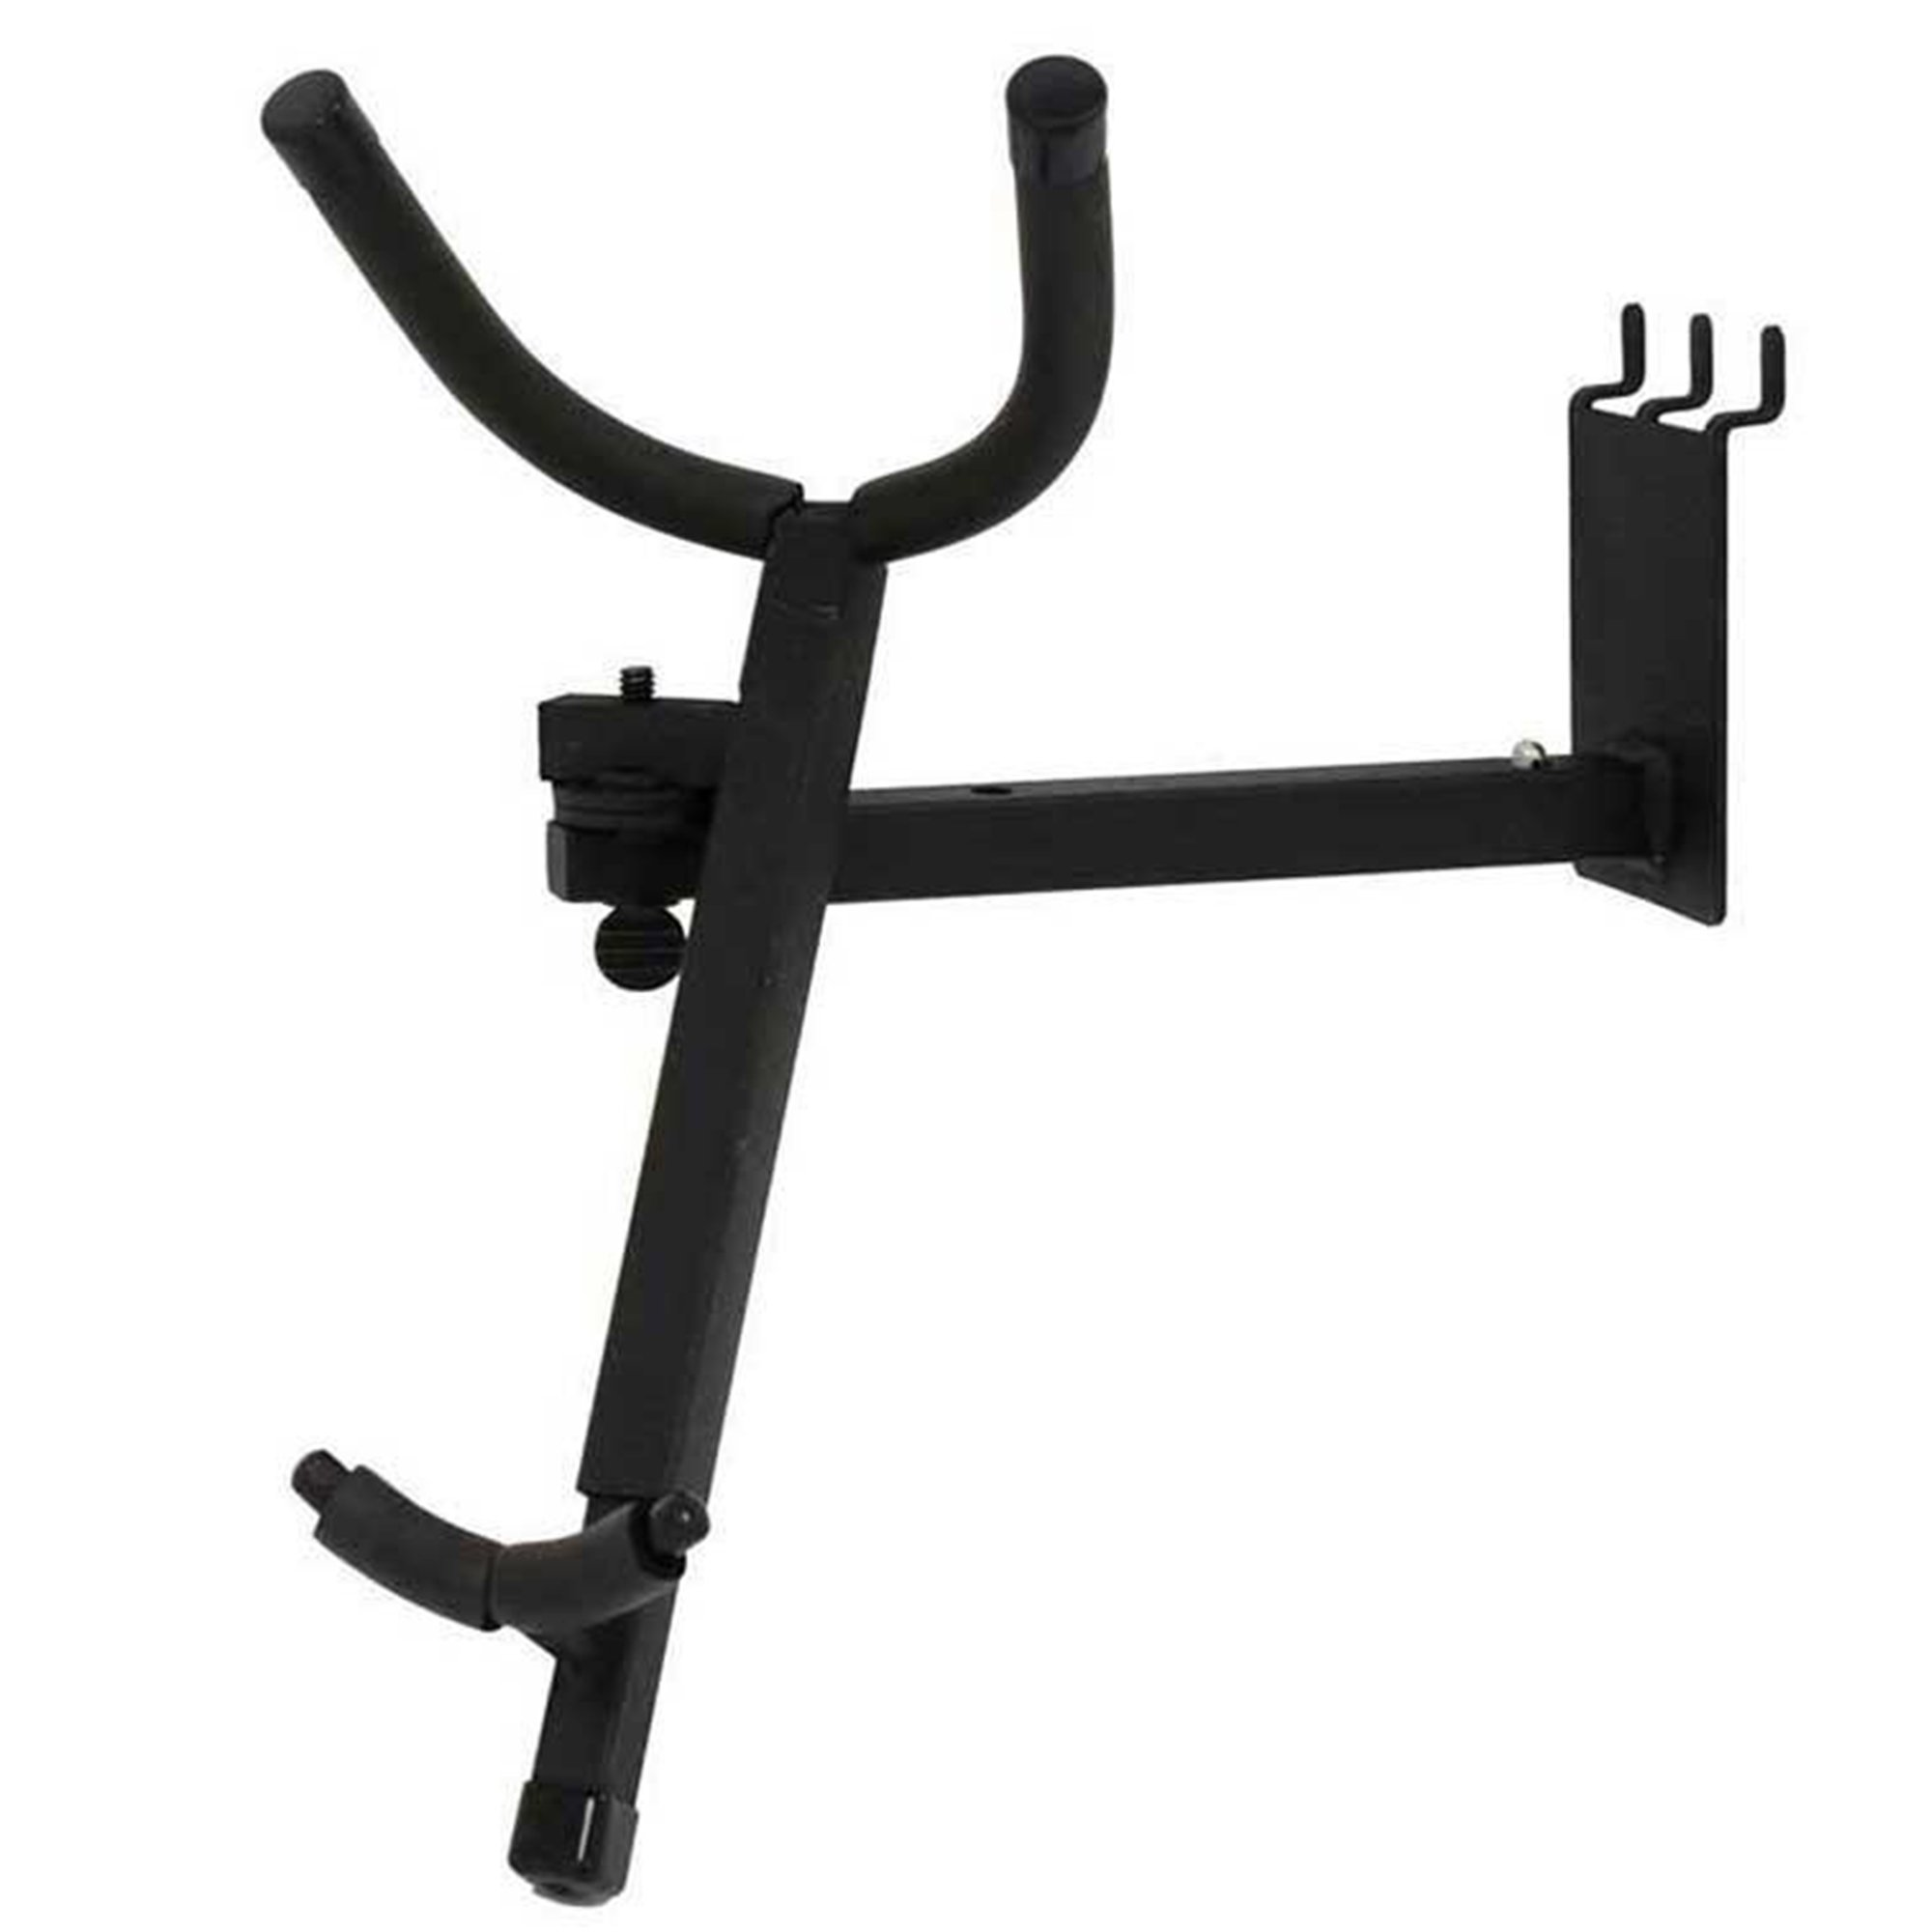 D'Luca Adjustable Alto/Tenor Sax Holder Fits Slatwall And Peg Wall